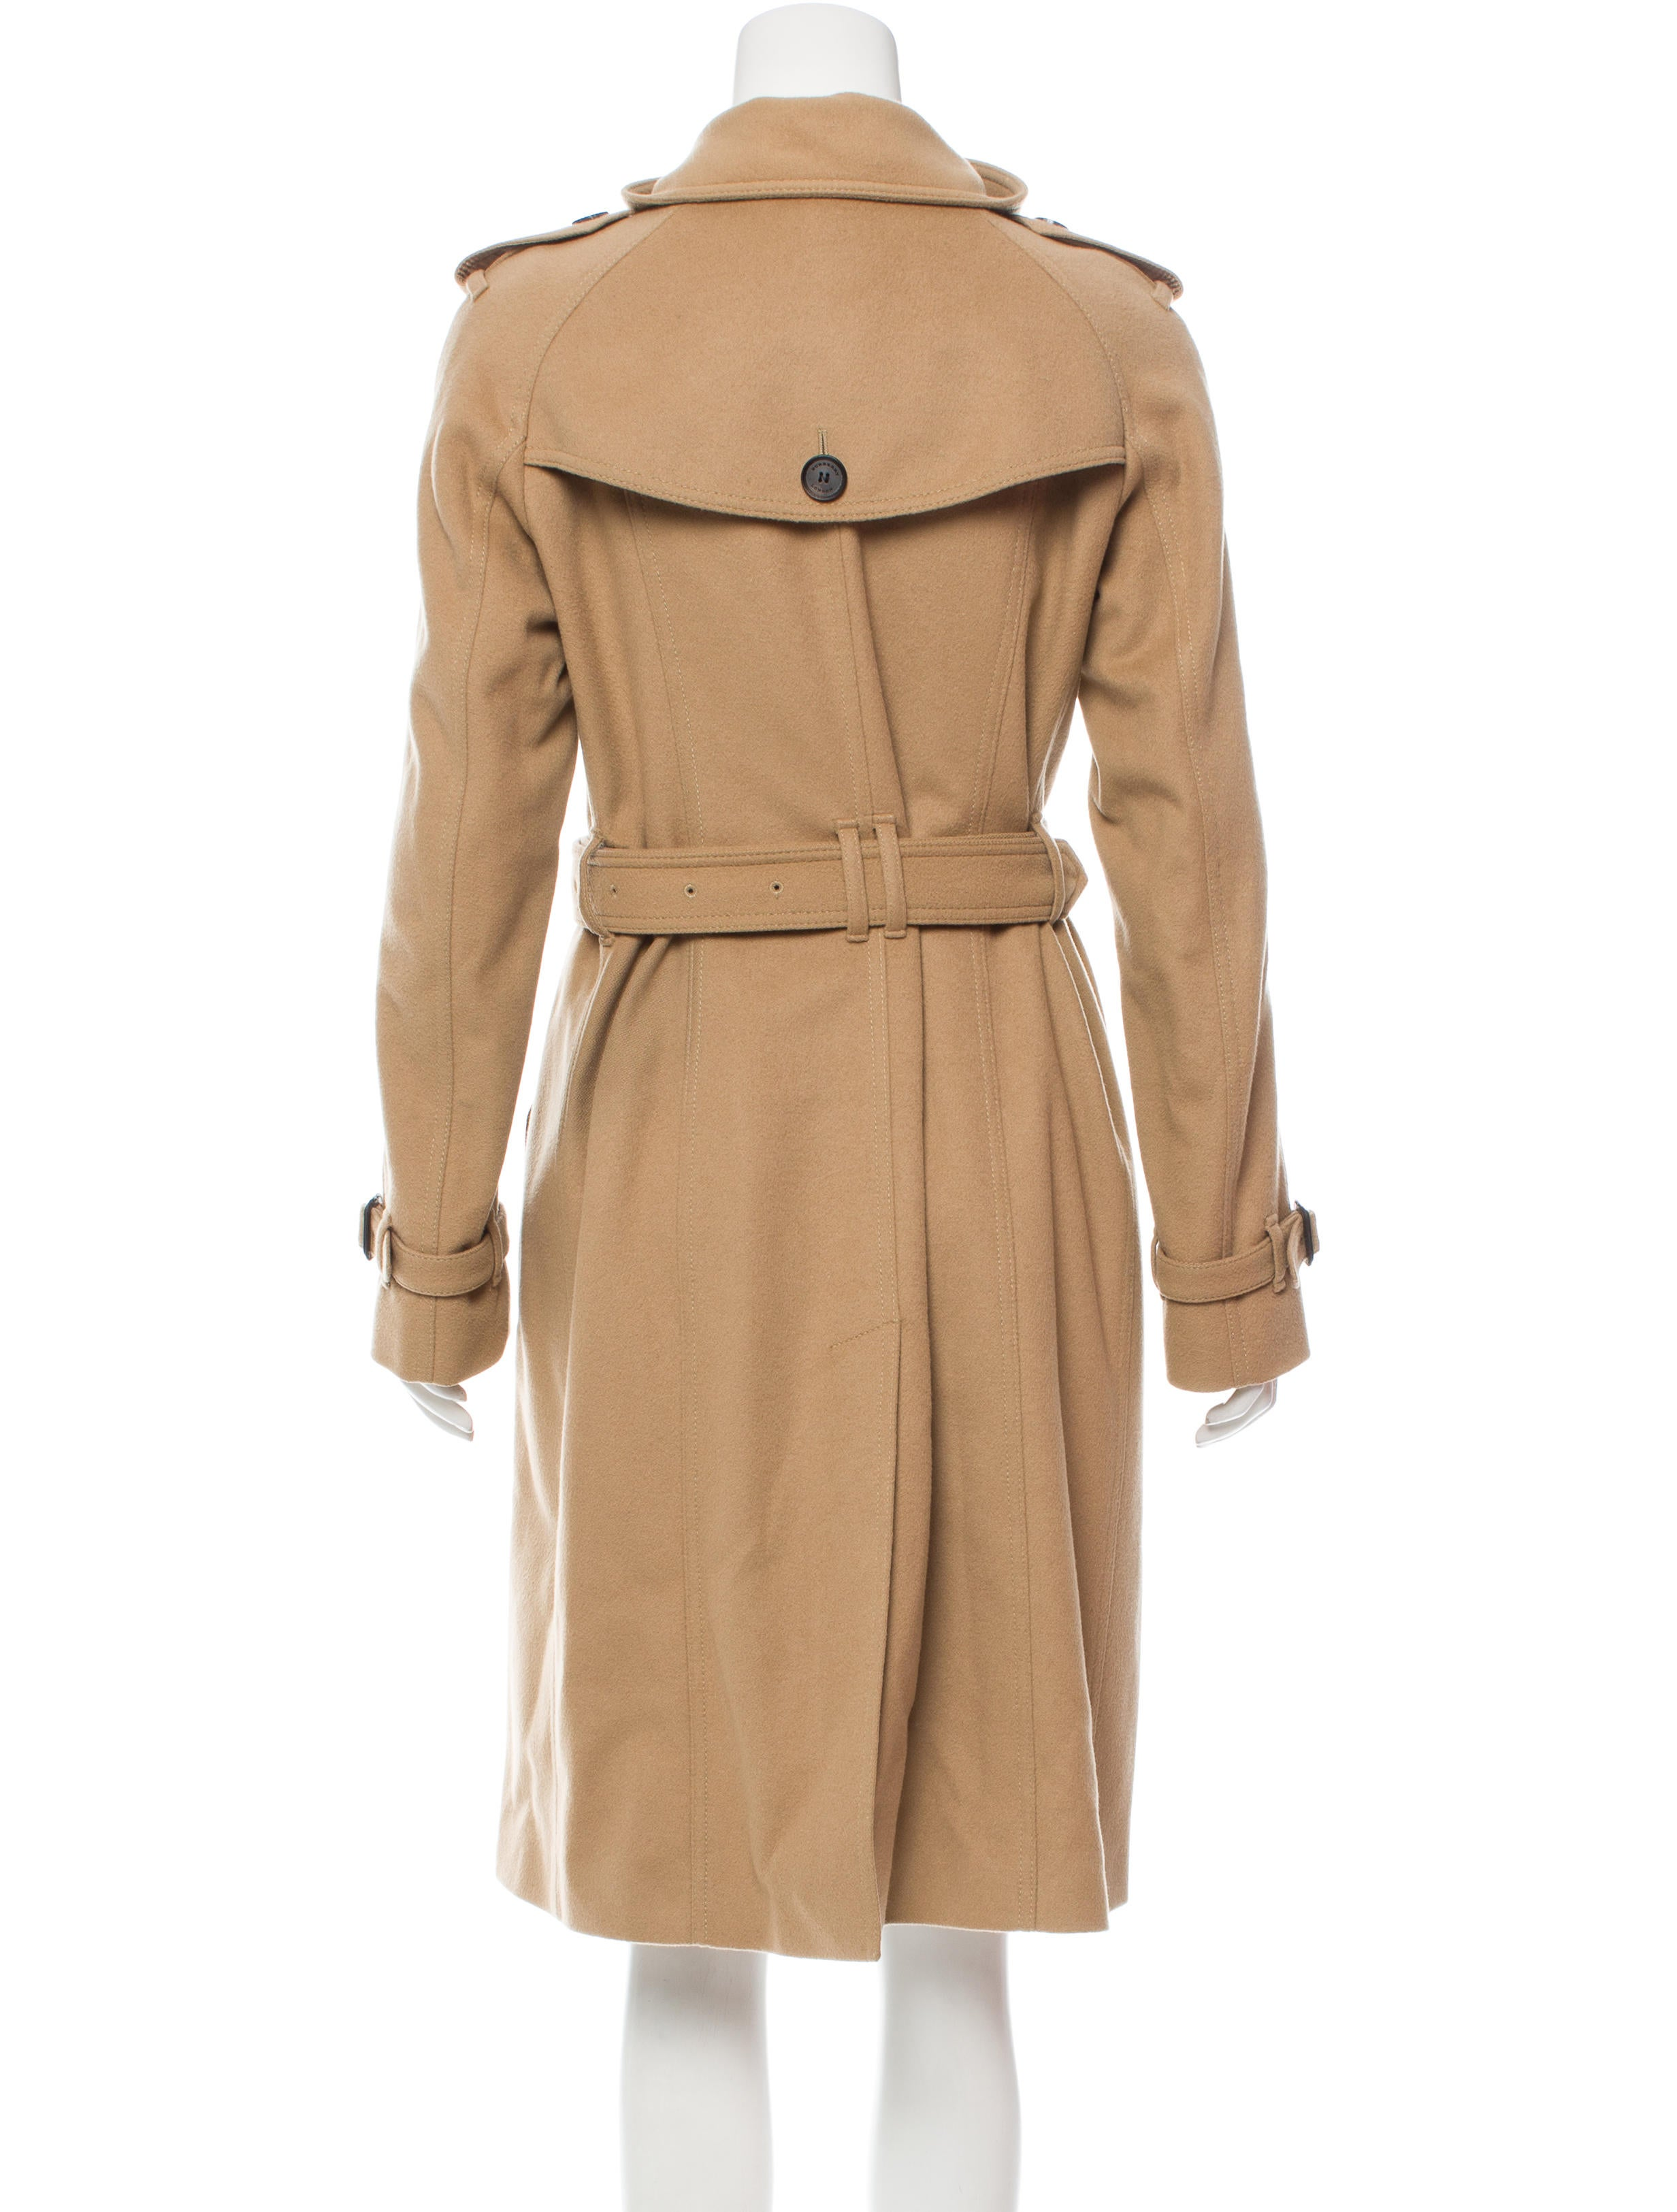 Want to add a timeless quality to your wardrobe? Take a look at London Fog's women's trench coats. Versatile enough to wear with a sexy black dress and heels or your weekend t-shirt and worn-out jeans, our signature long and short trench coats for women are elegant, refined and will keep you looking your best no matter the weather.